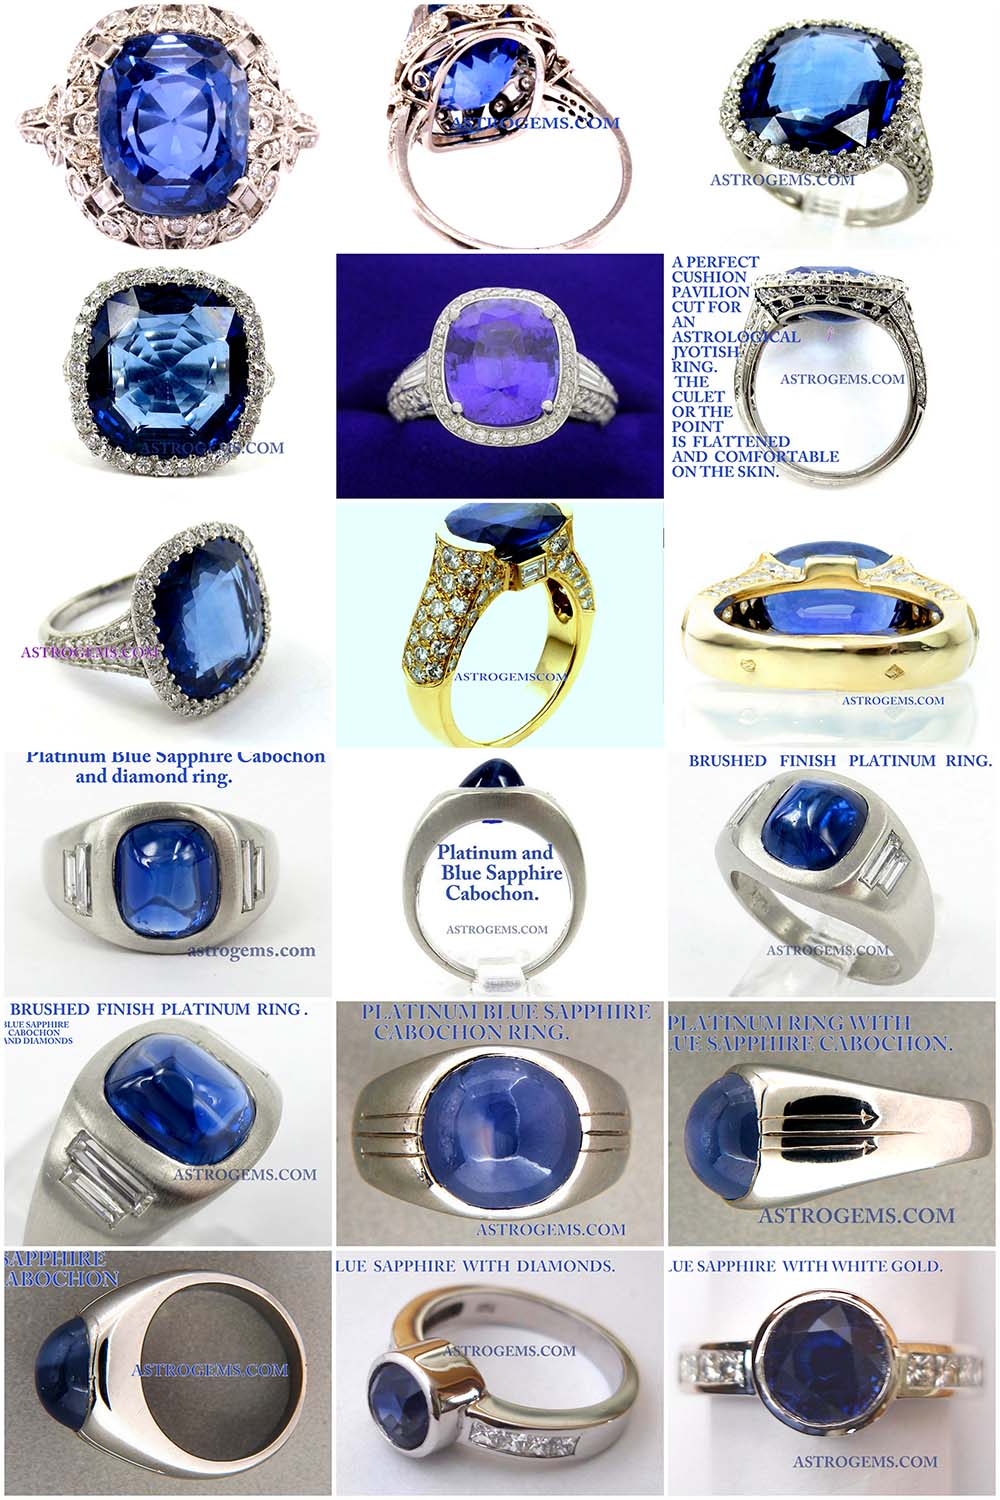 Astrogems makes a wide variety of blue sapphire rings. We can also create custom designs.